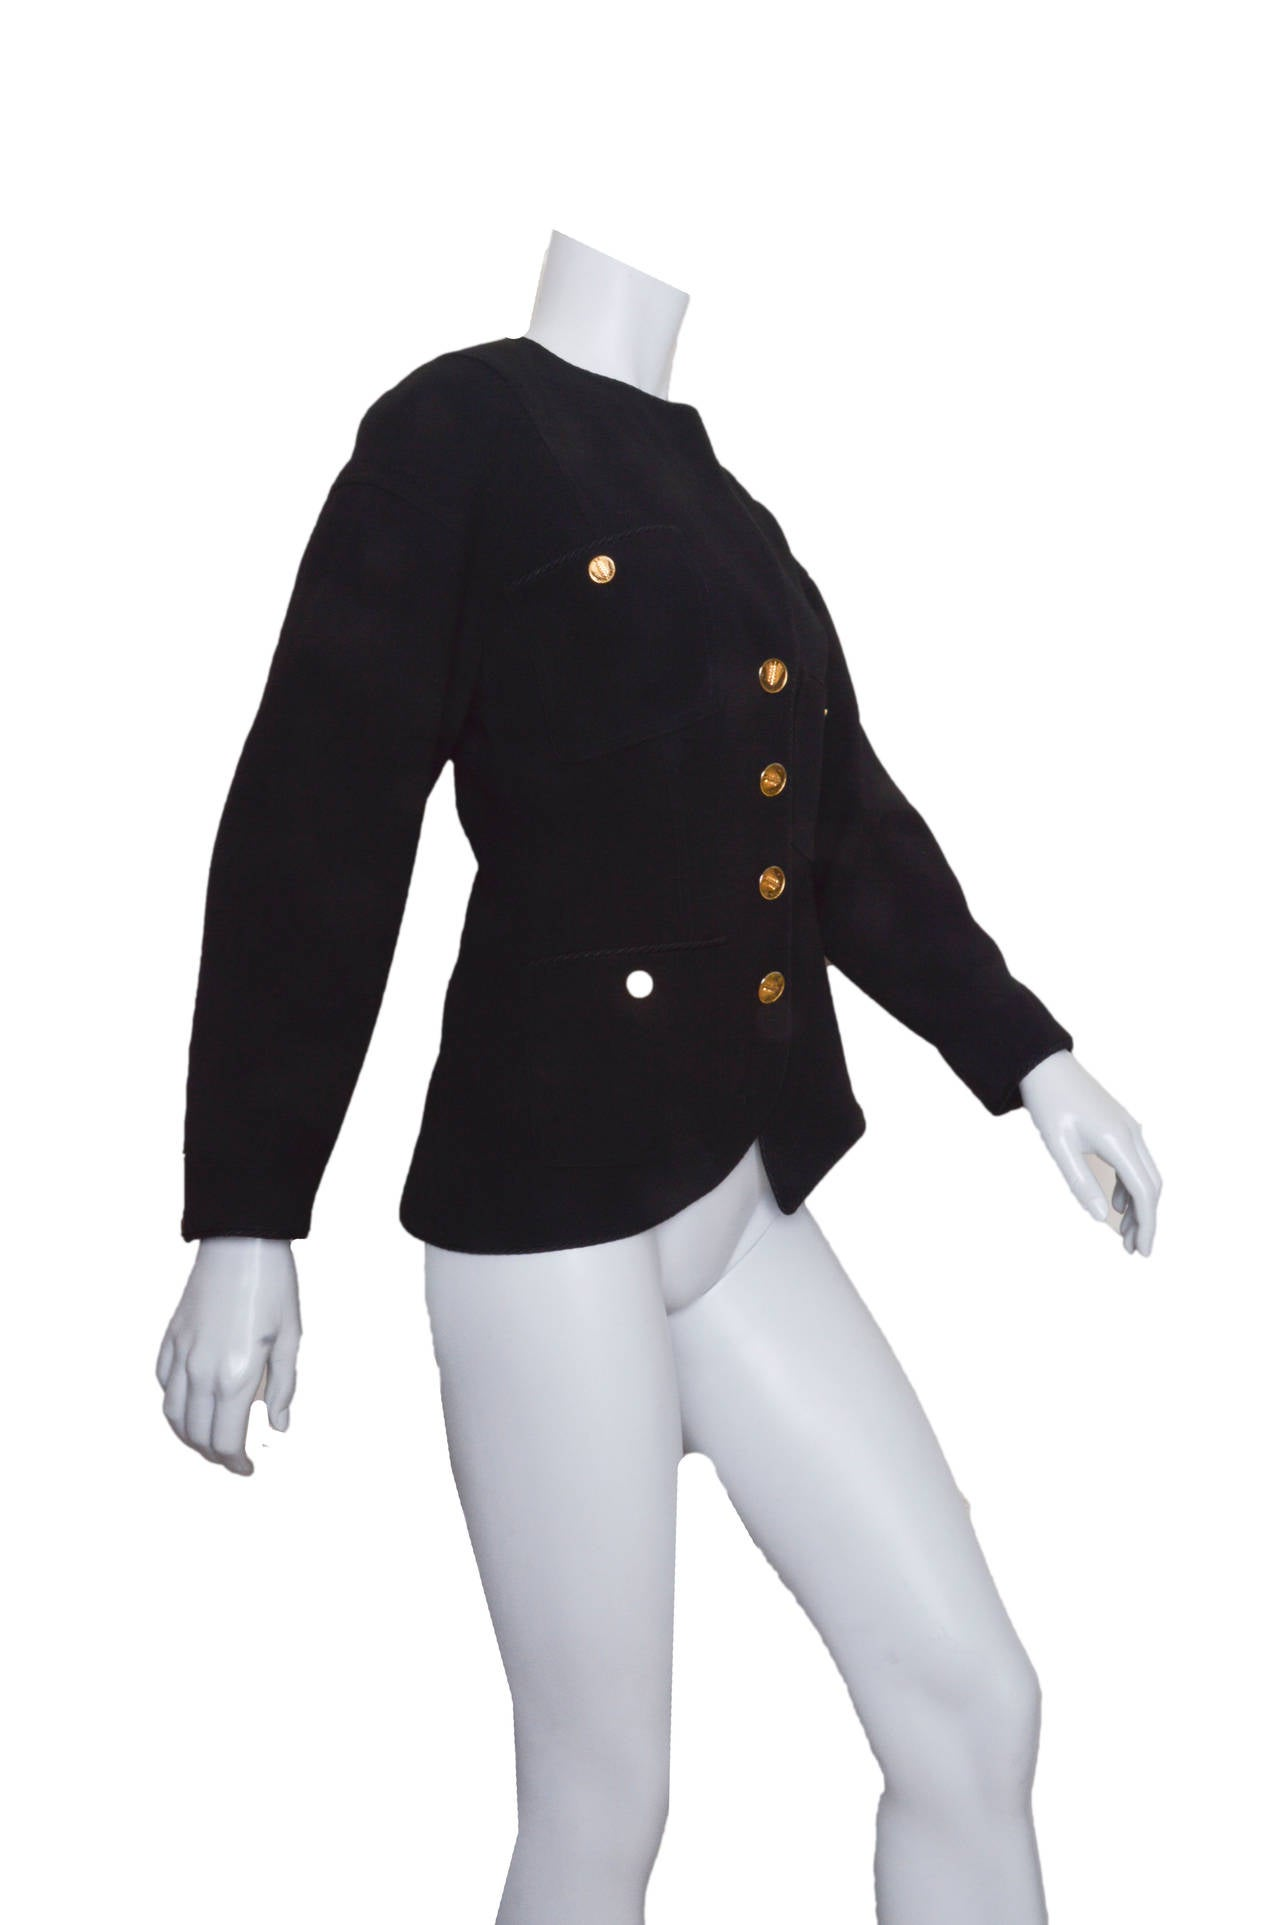 Outstanding Chanel Boutique black jacket. Asymmetrical neckline, pockets and hem. One side of collar folds, one is upright. Fitted through waist. Corded trim throughout. Gold Chanel Cc logo